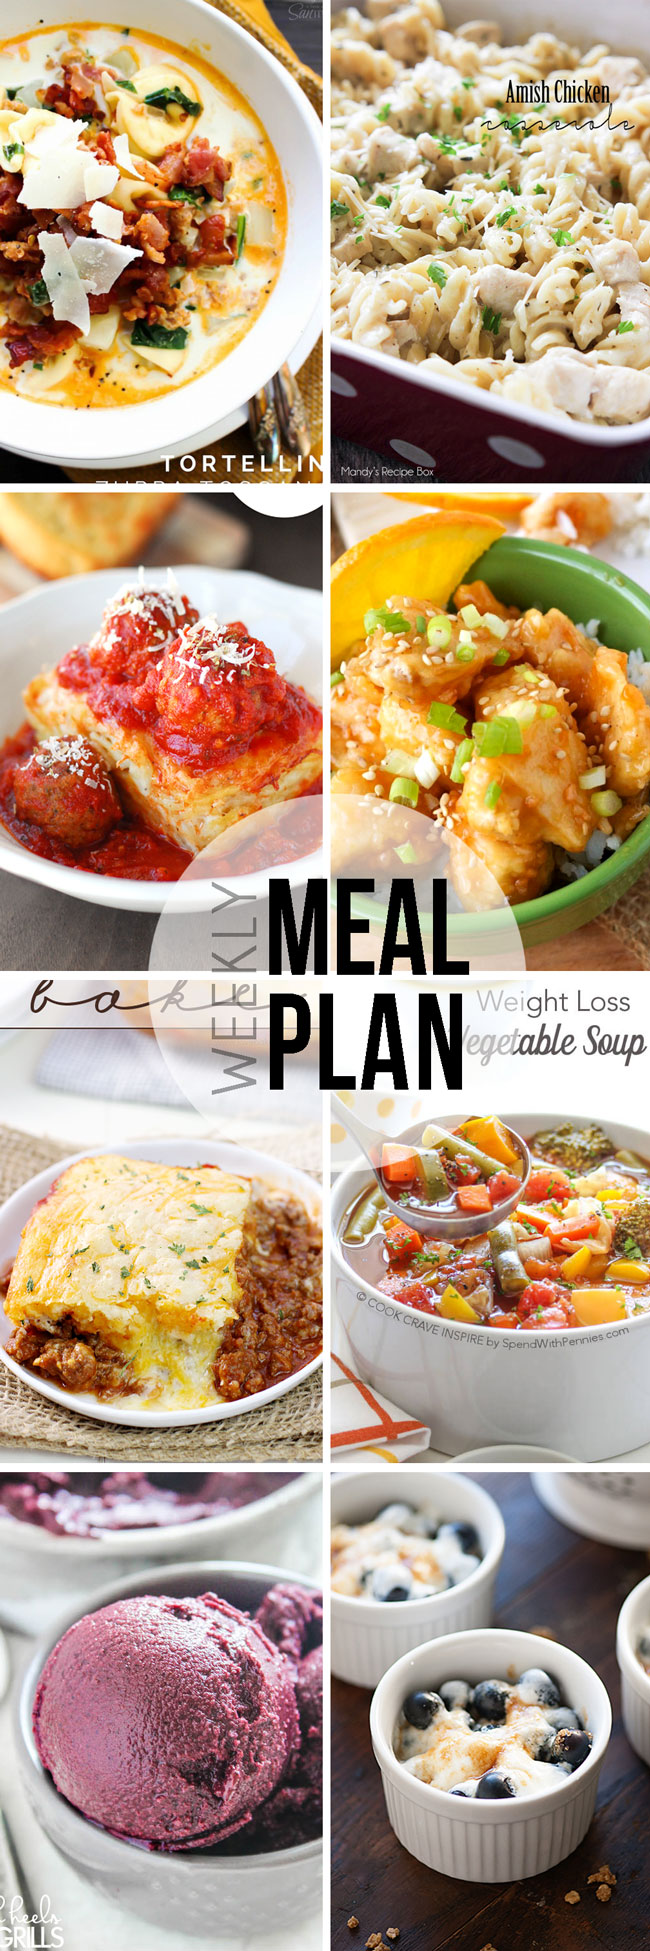 A weekly meal plan to help take the hassle out of feeding your family.